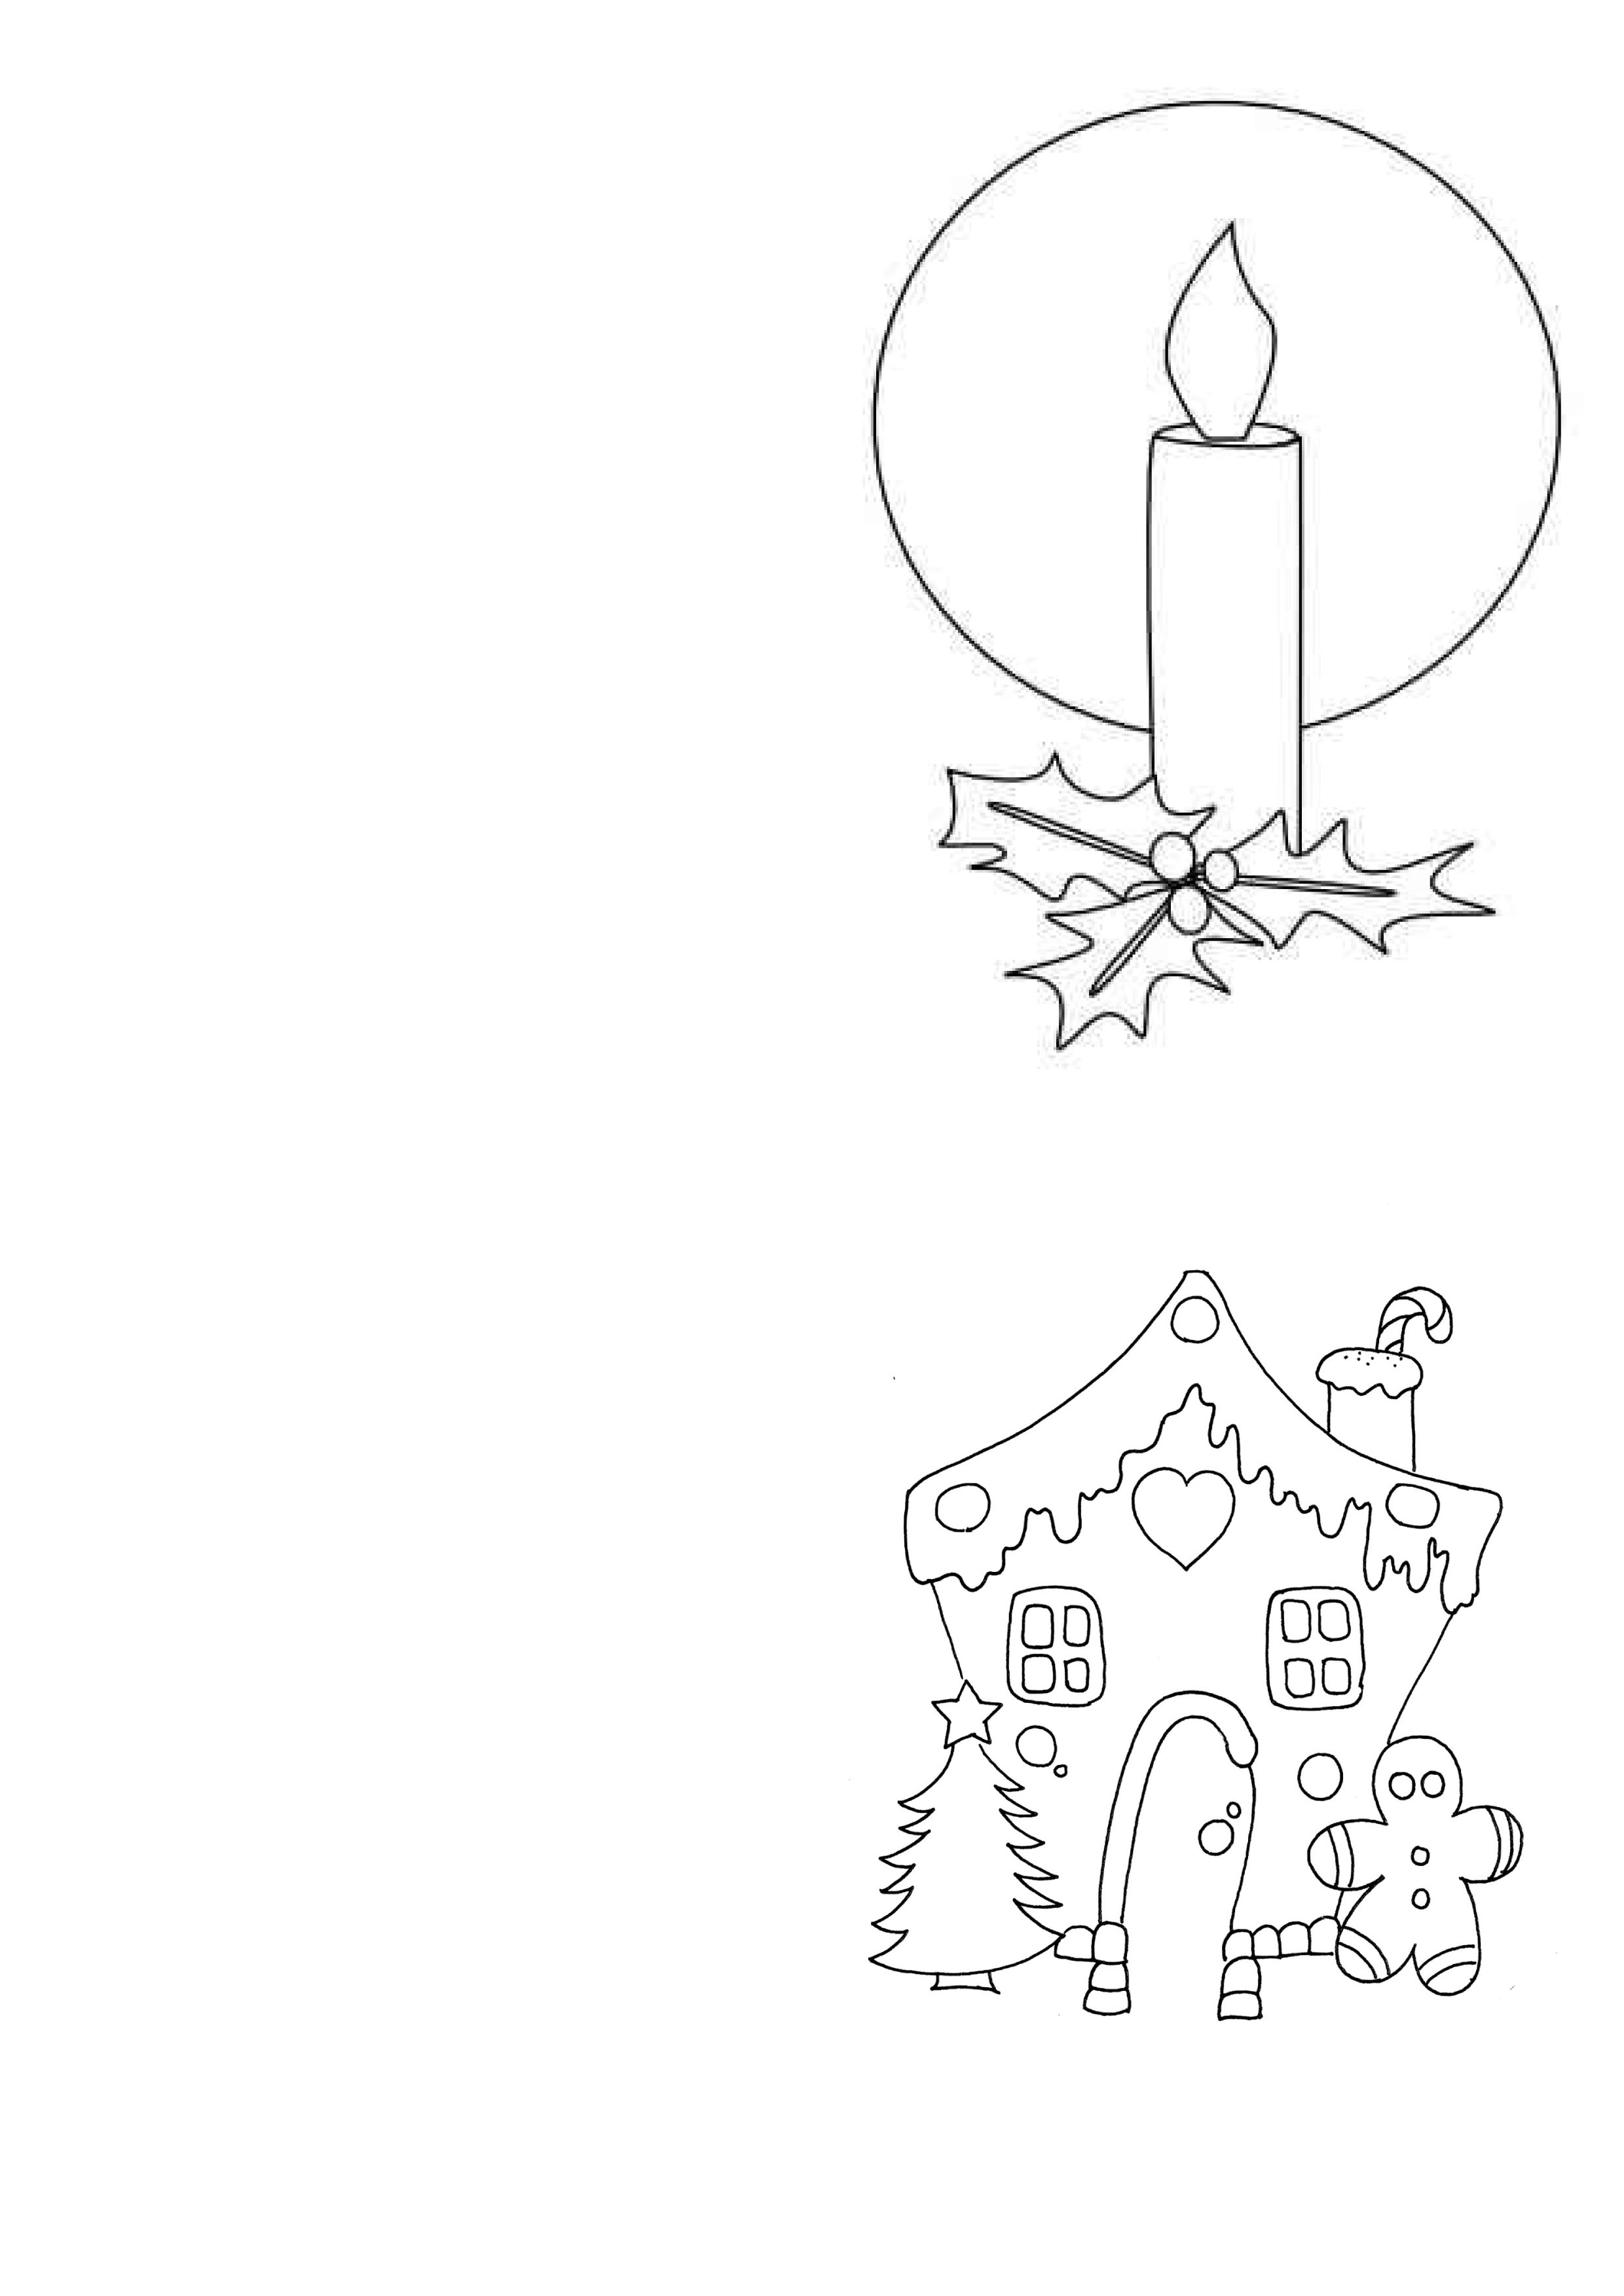 Children's FREE christmas card print outs for card making